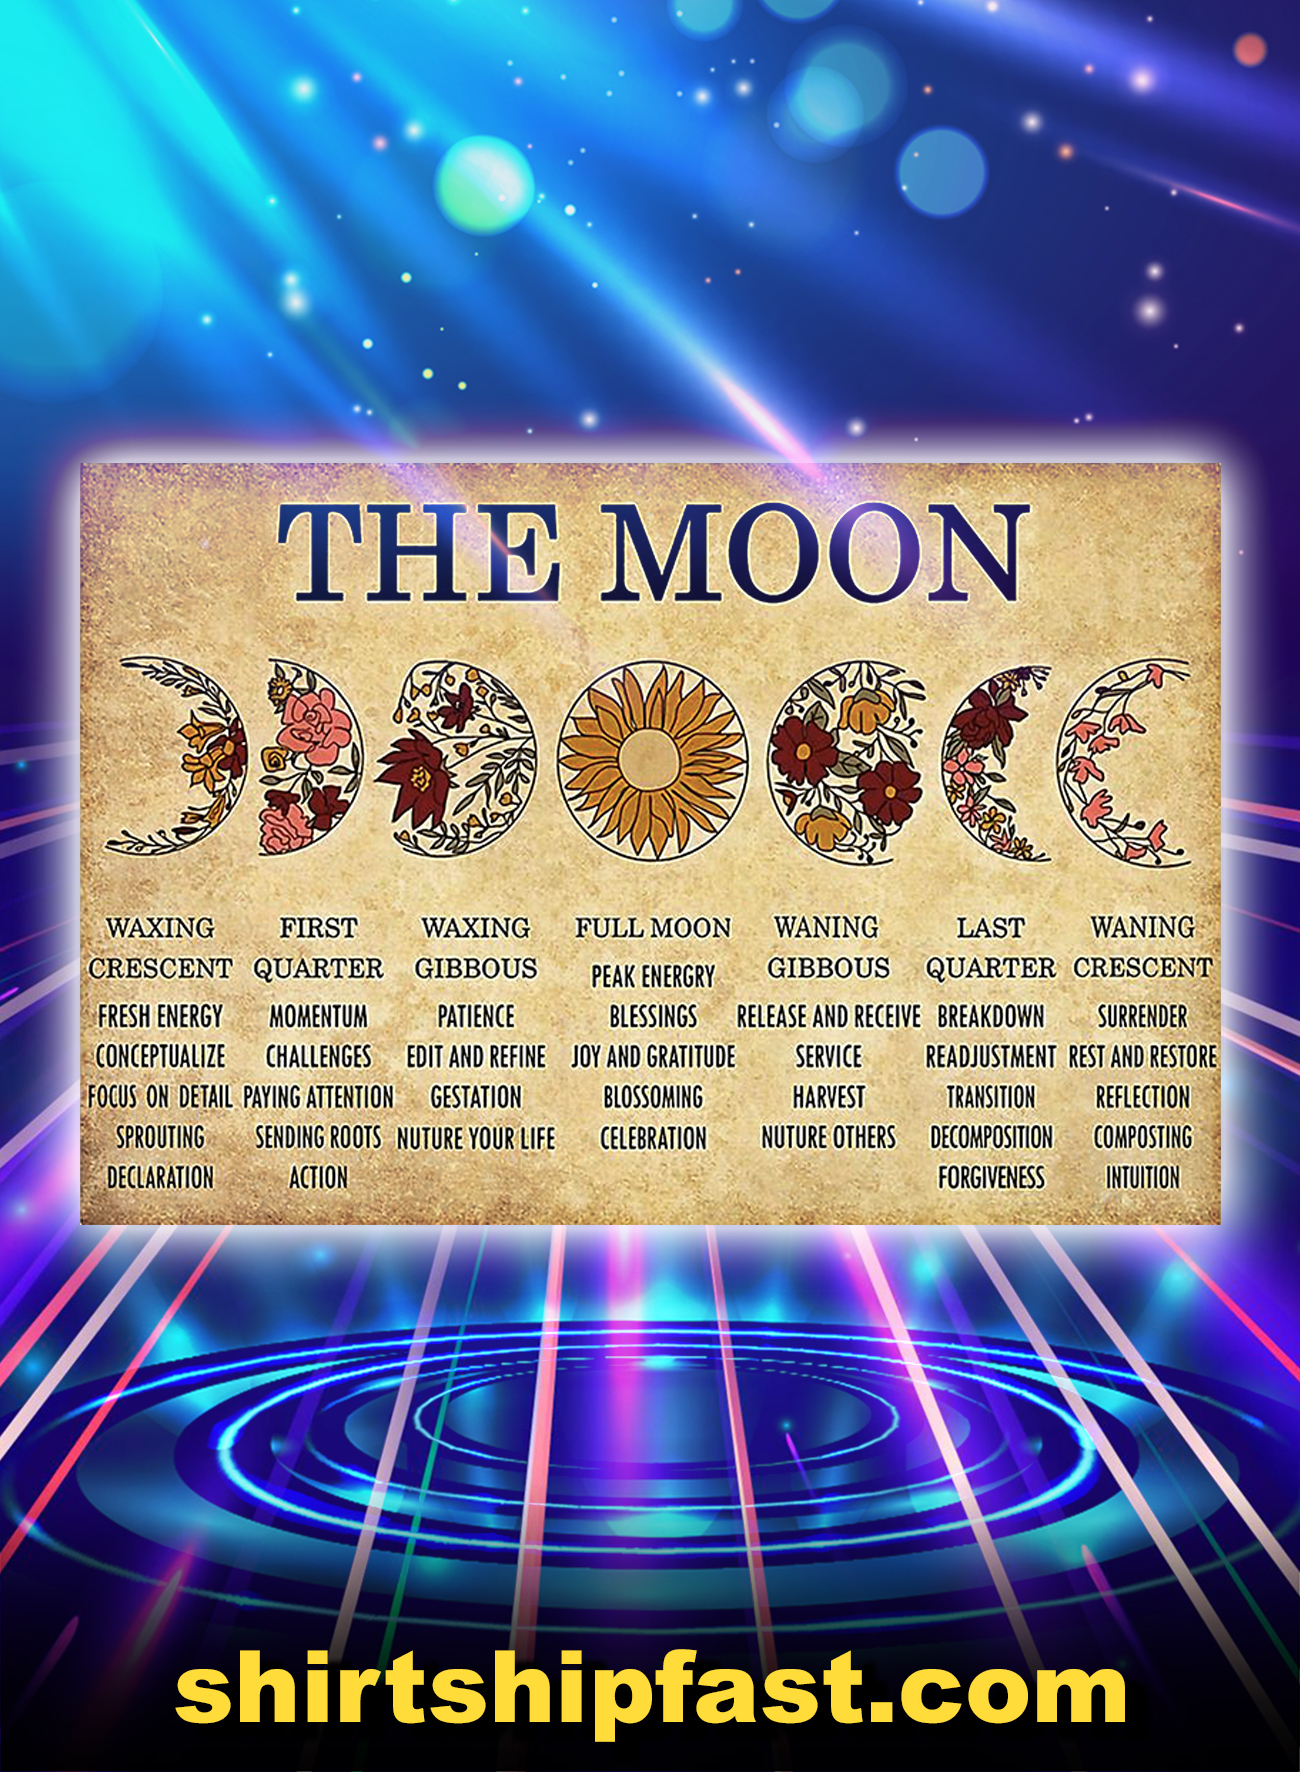 The moon waxing crescent first quarter poster - A4